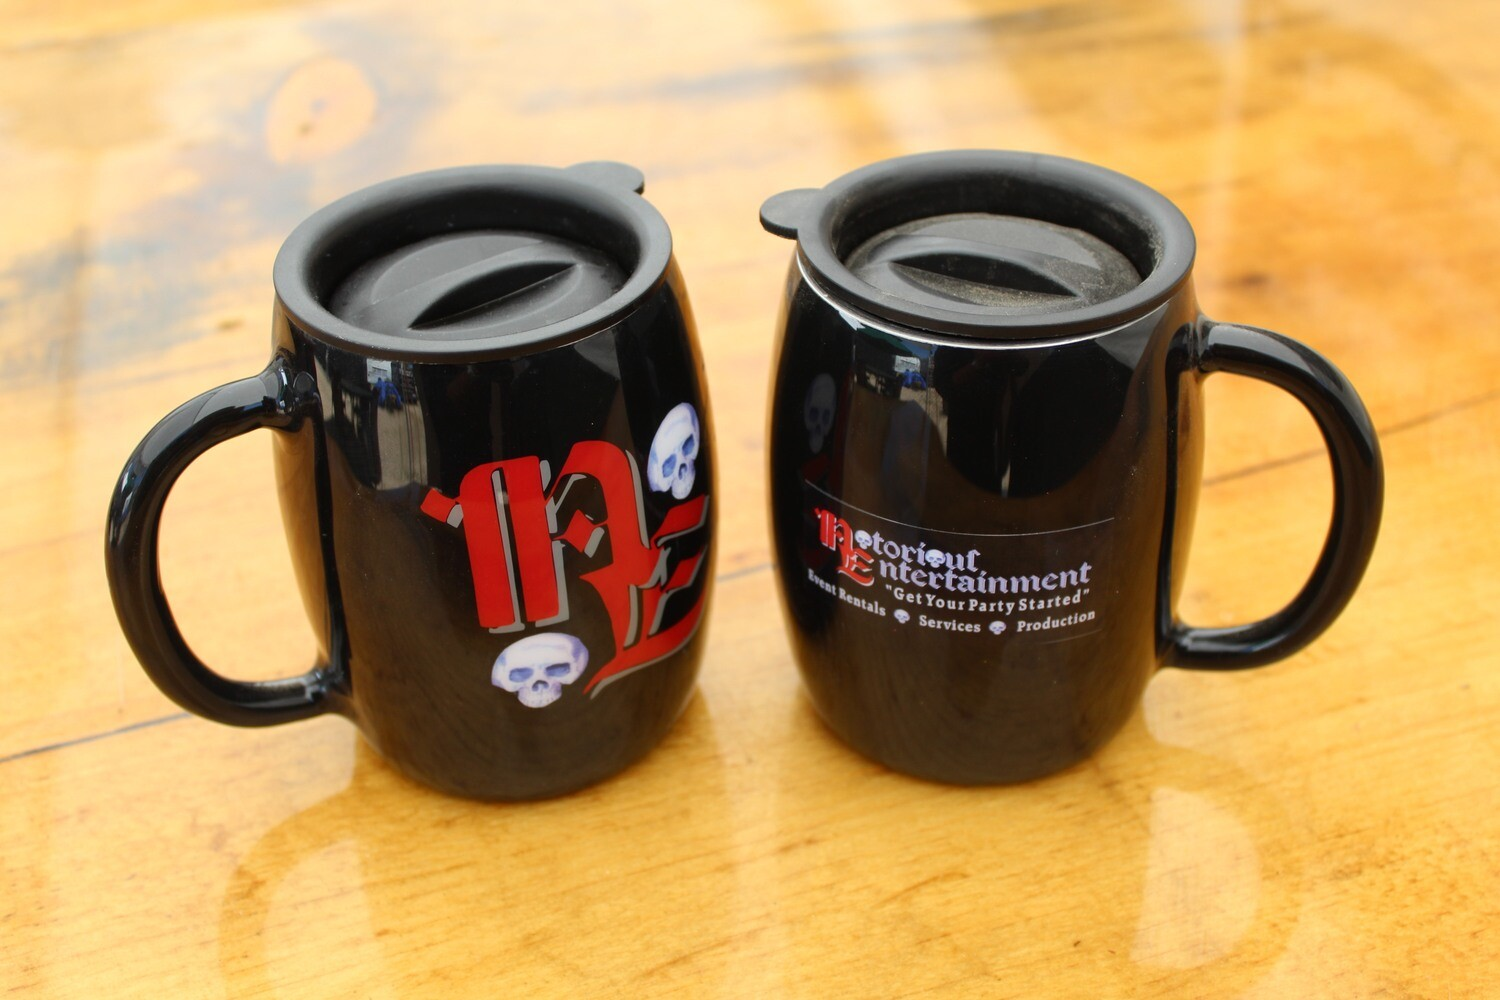 Notorious Entertainment Logo Coffee Mug